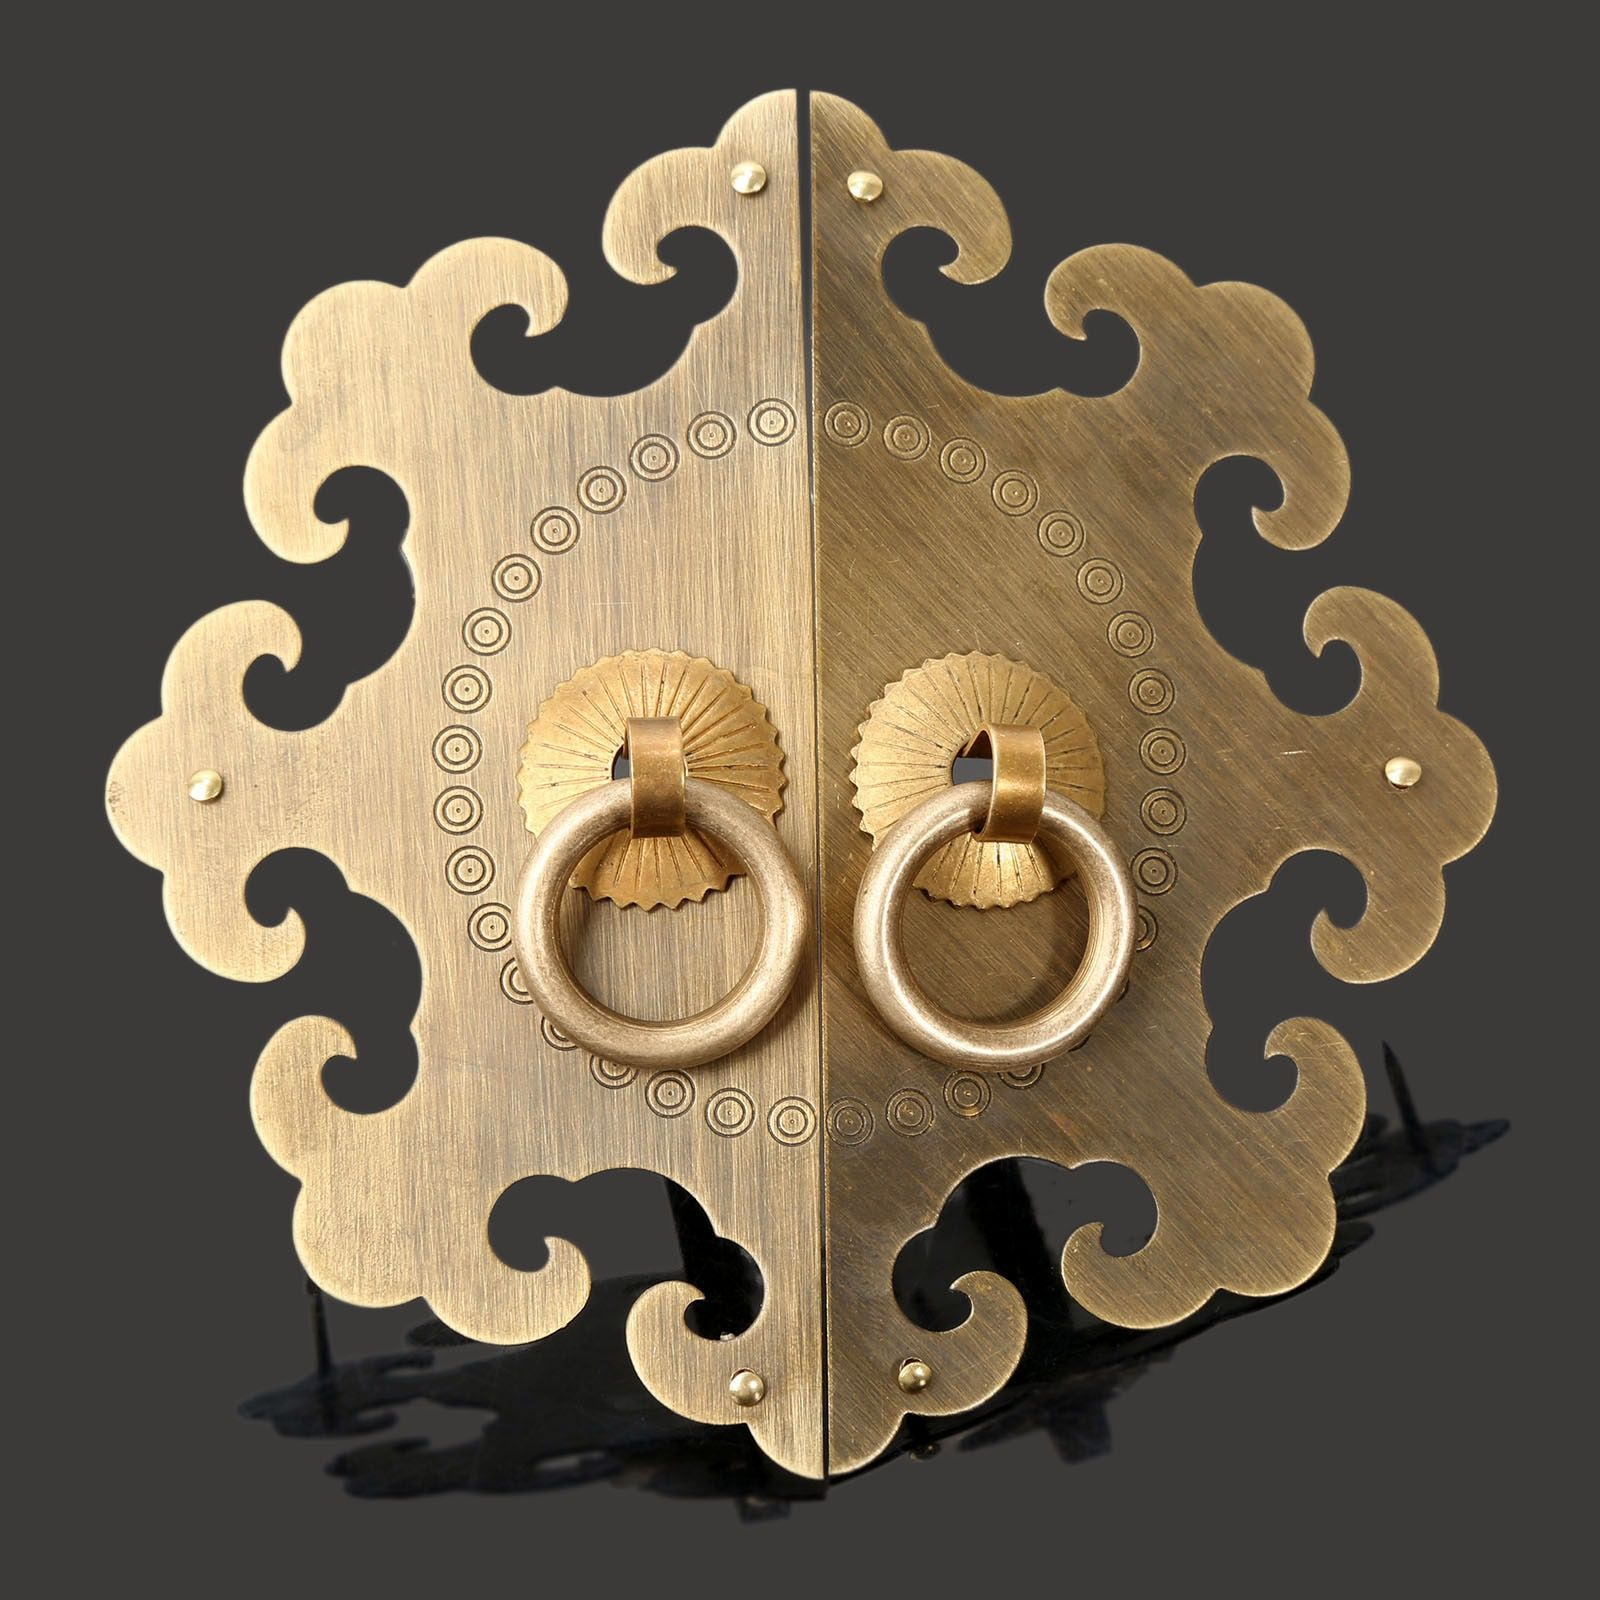 Antique Furniture Fittings Brass Hardware Vintage Chinese Cabinet Face Plate Set Door Cupboard Pull Handle Knobs for Furniture